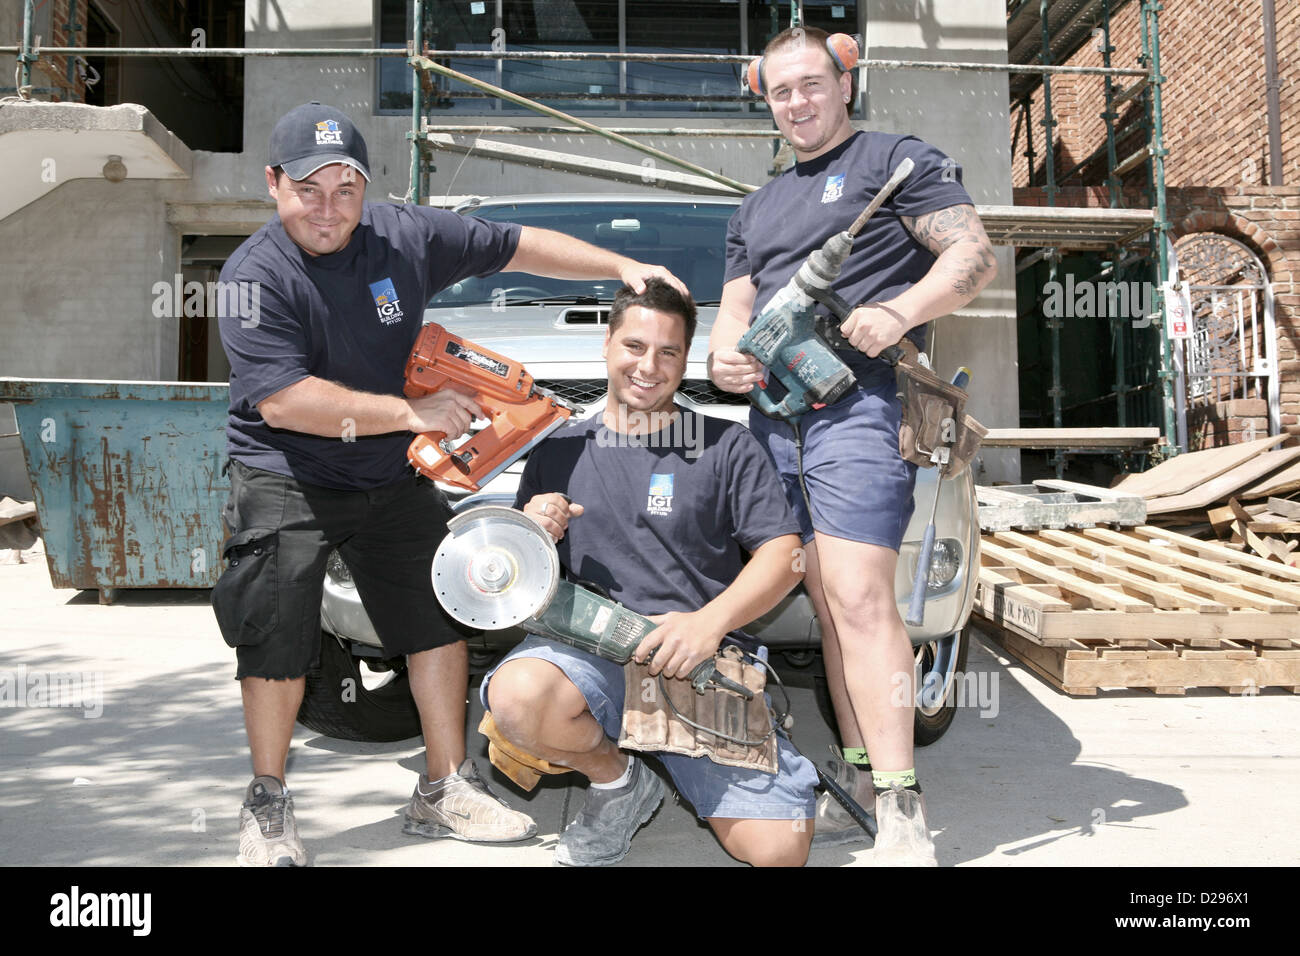 Tradesmen being funny and  posing with power tools for a photograph. - Stock Image